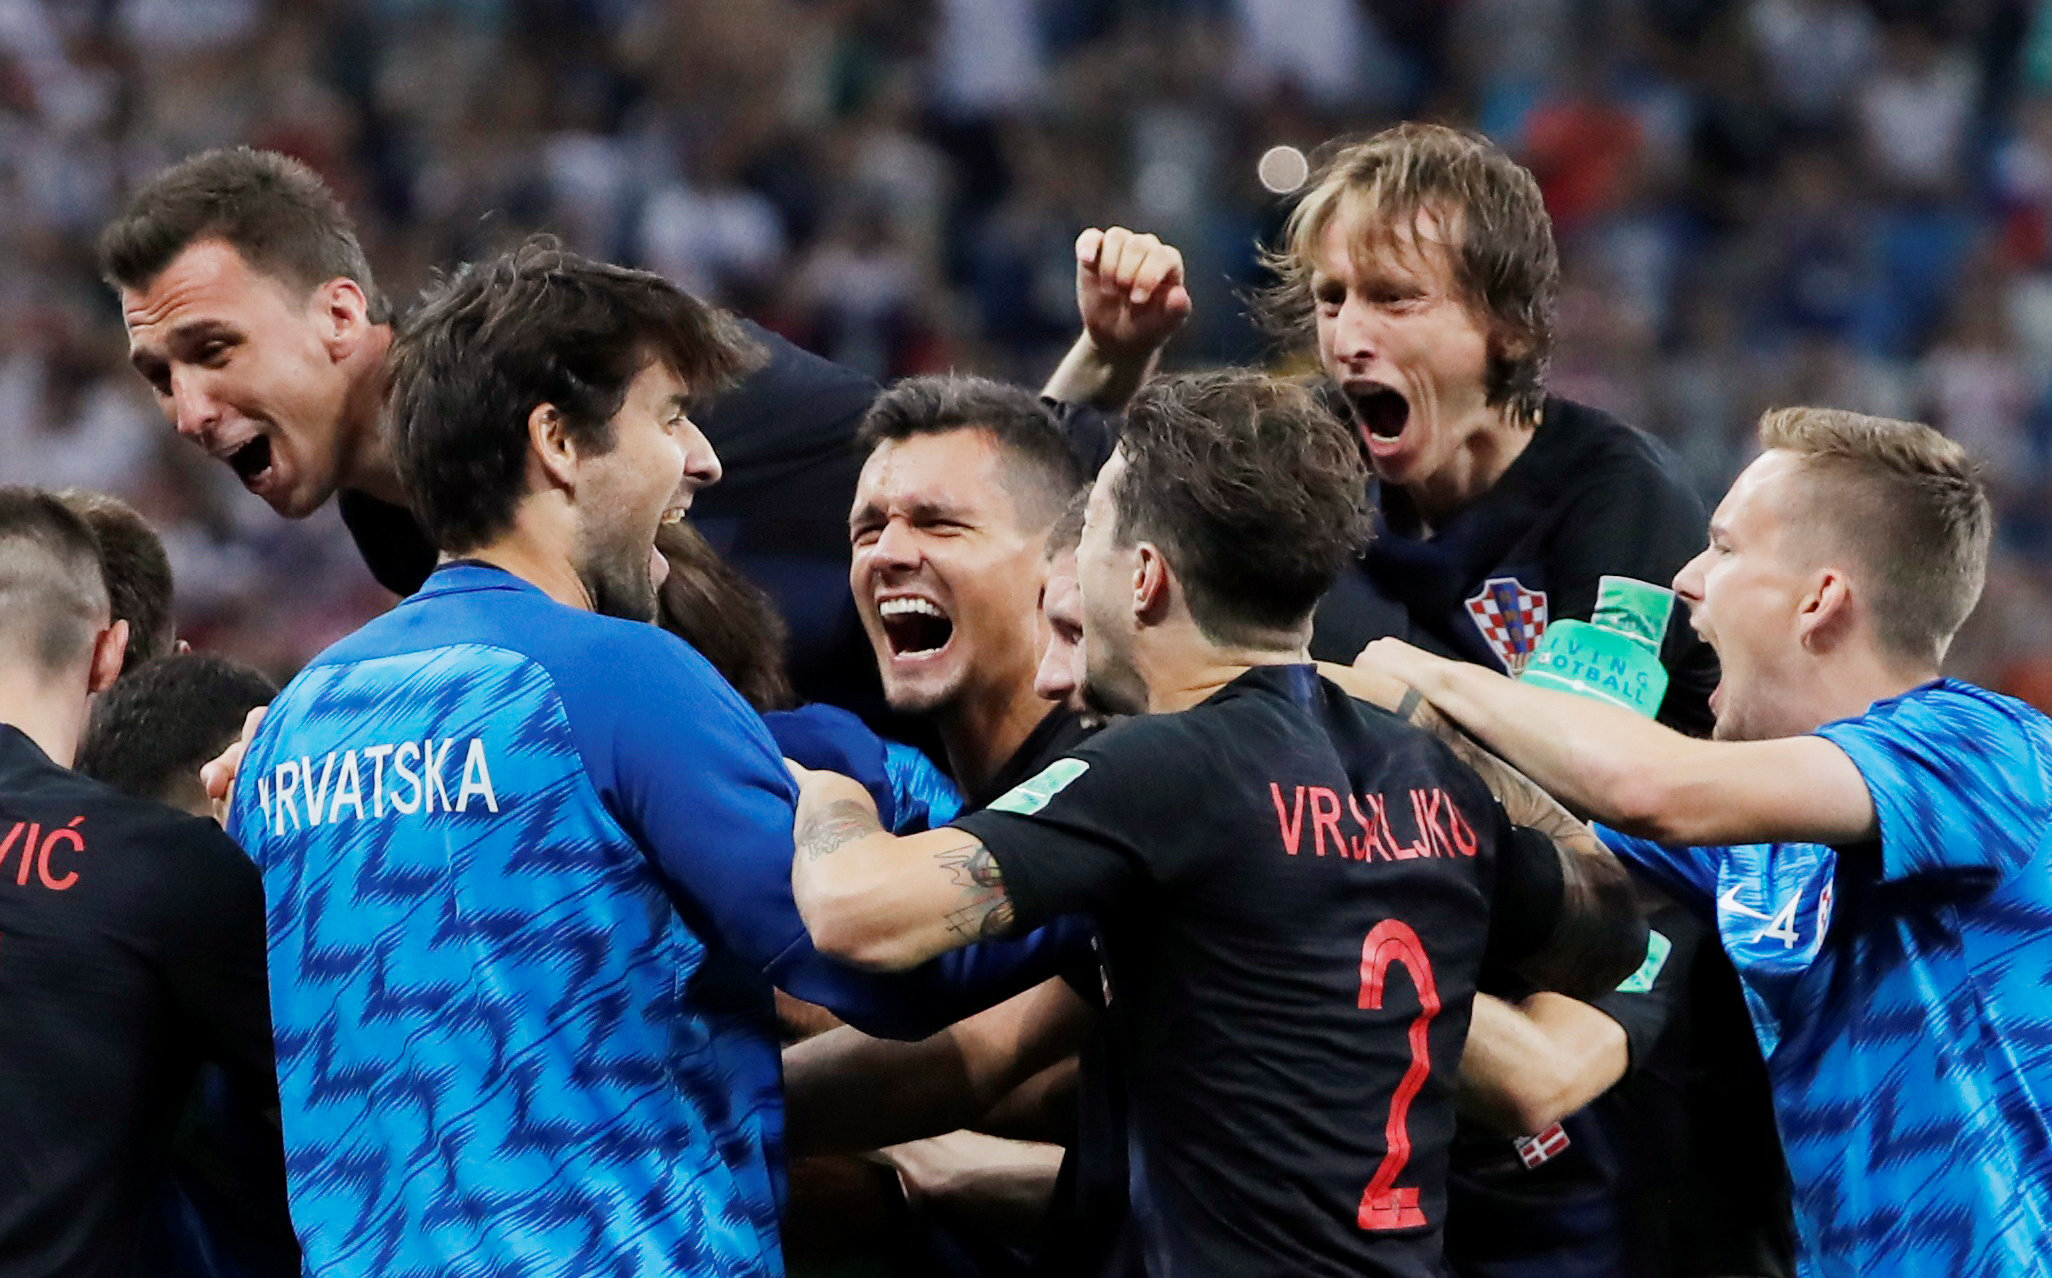 2018-07-01T210110Z_90597837_RC170646C600_RTRMADP_3_SOCCER-WORLDCUP-CRO-DNK